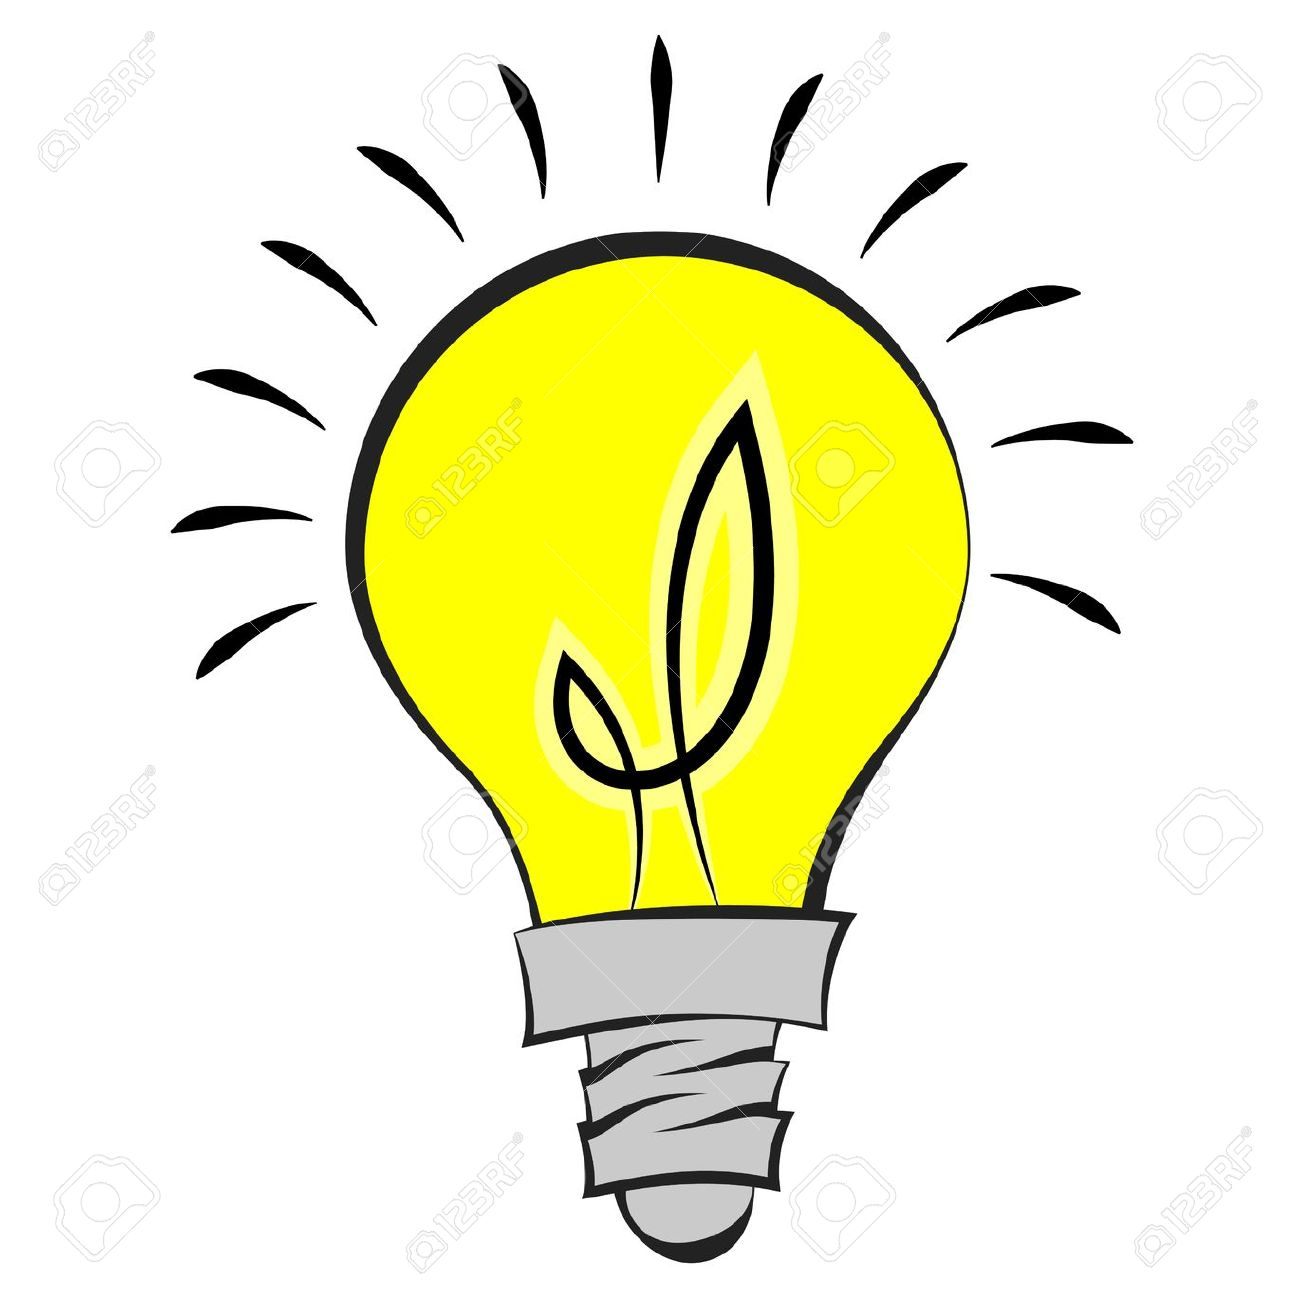 Light clipart pic graphic royalty free stock Best Light Bulb Clipart Images #7171 - Clipartion.com graphic royalty free stock